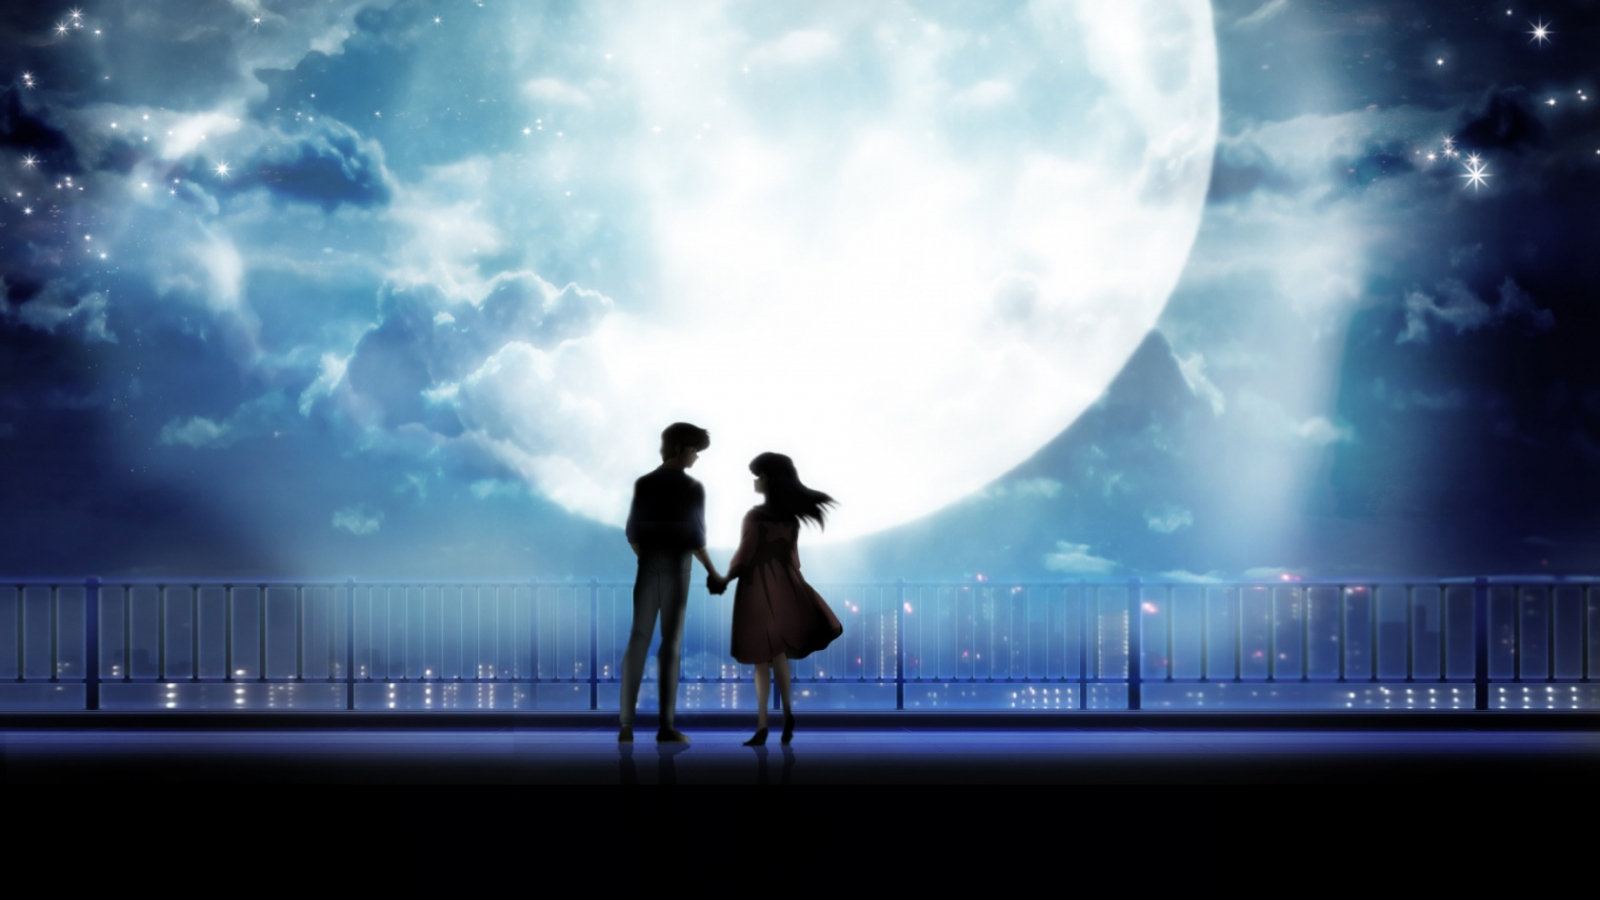 Anime art anime couple holding hands moonlight desktopjpg 1680x1050 desktop 1680x1050